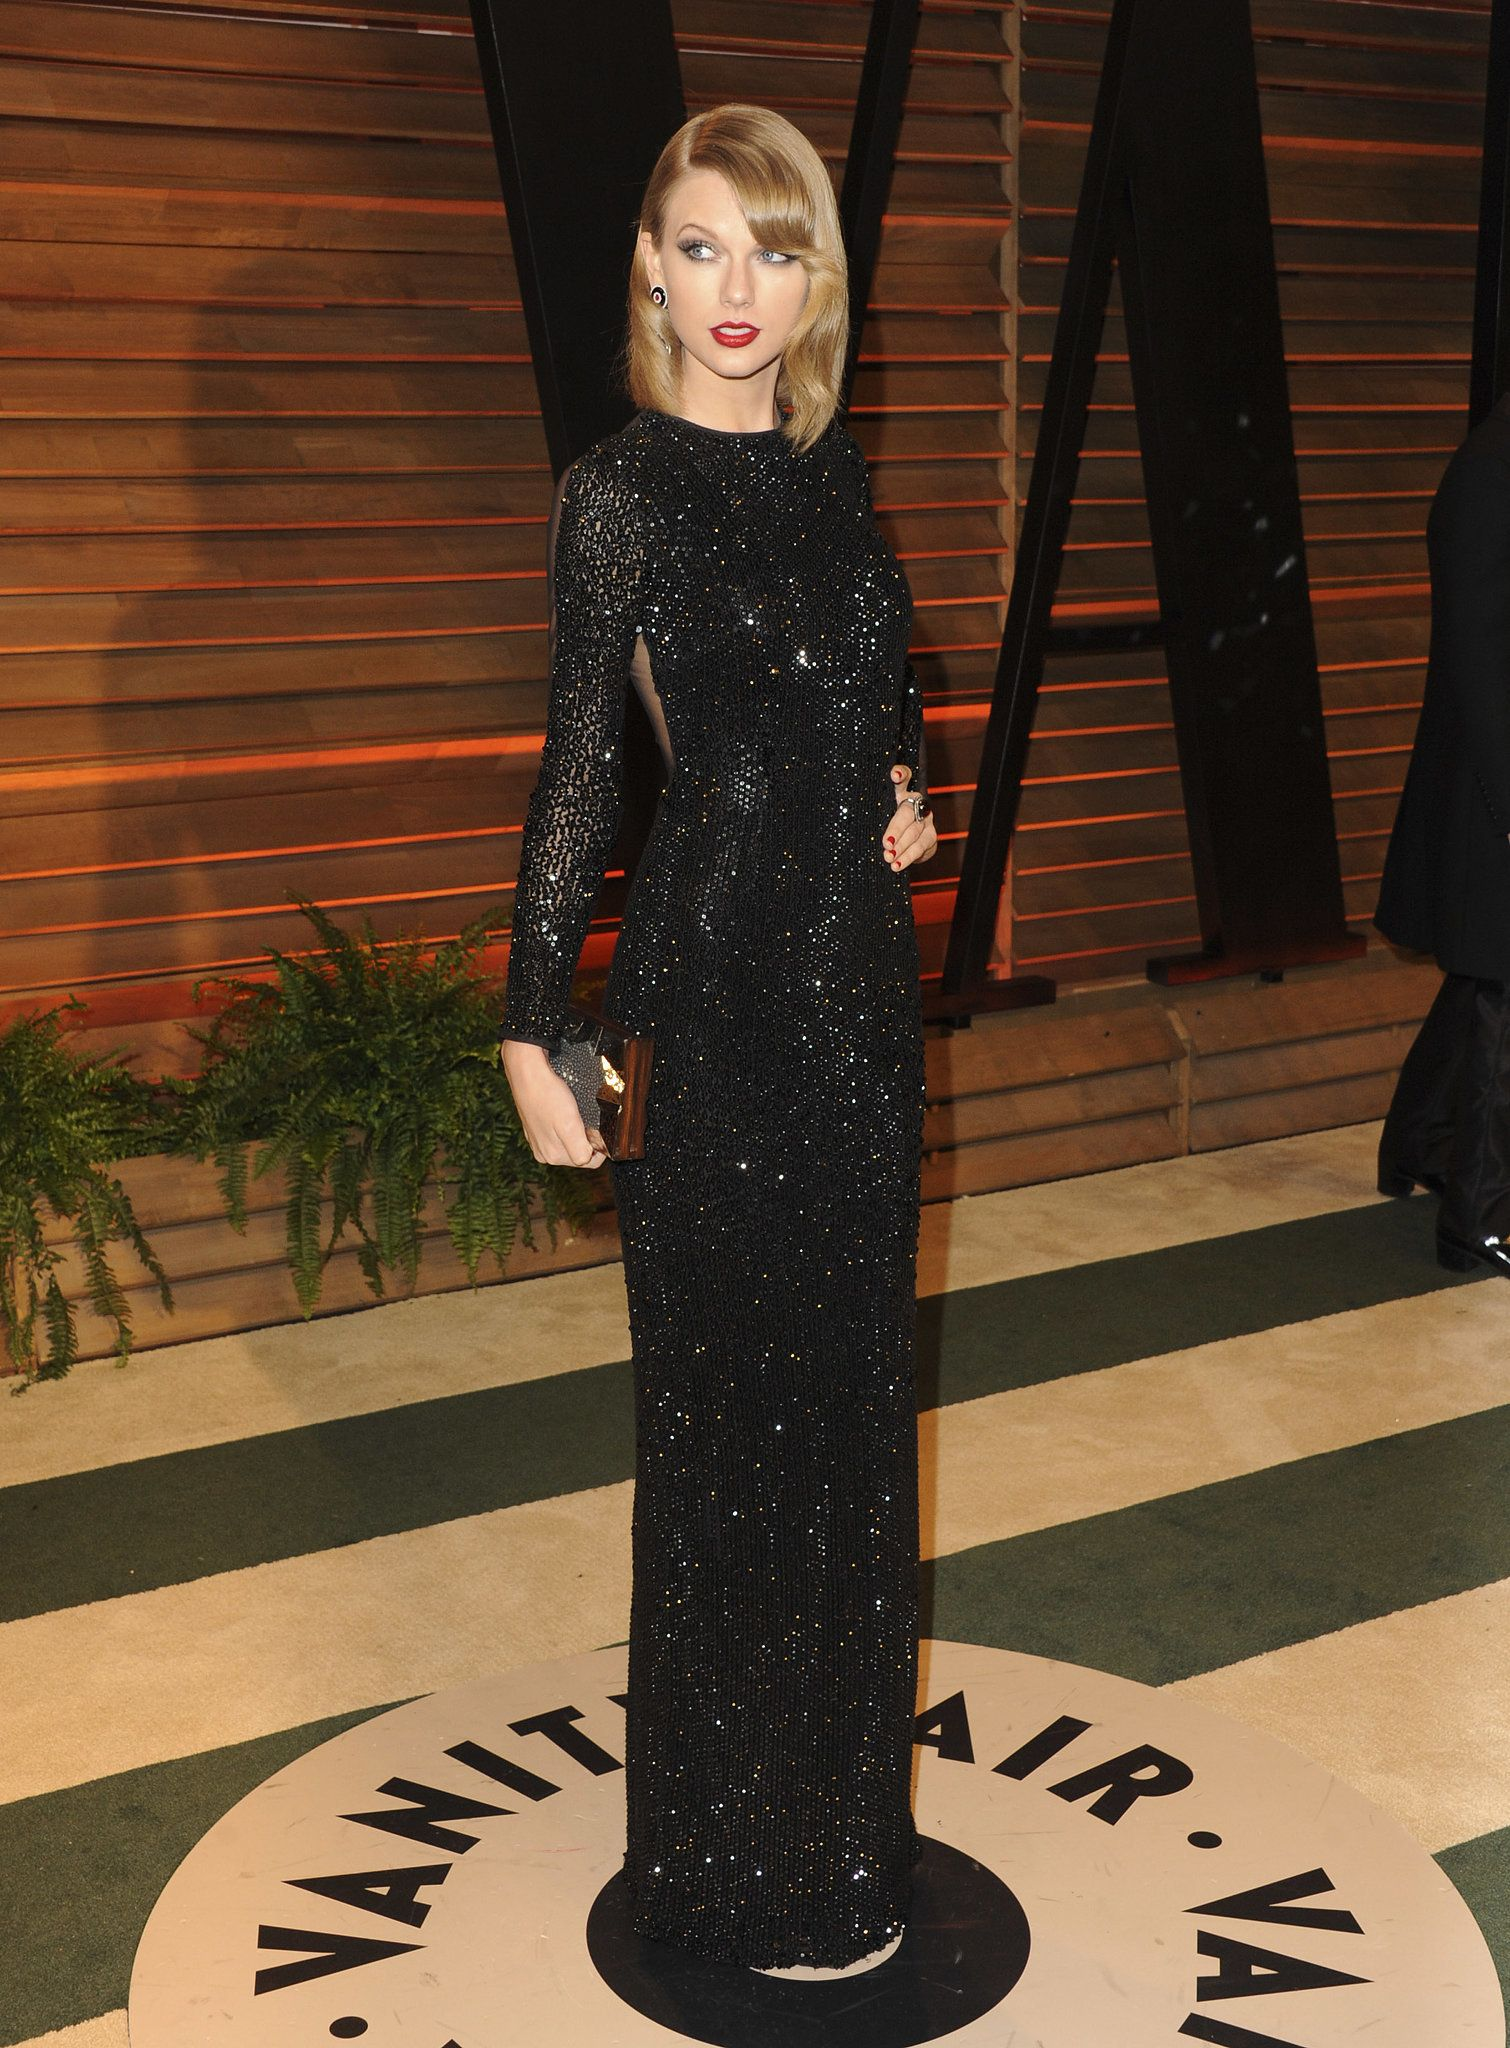 Taylor swift at the vanity fair oscars party red carpet